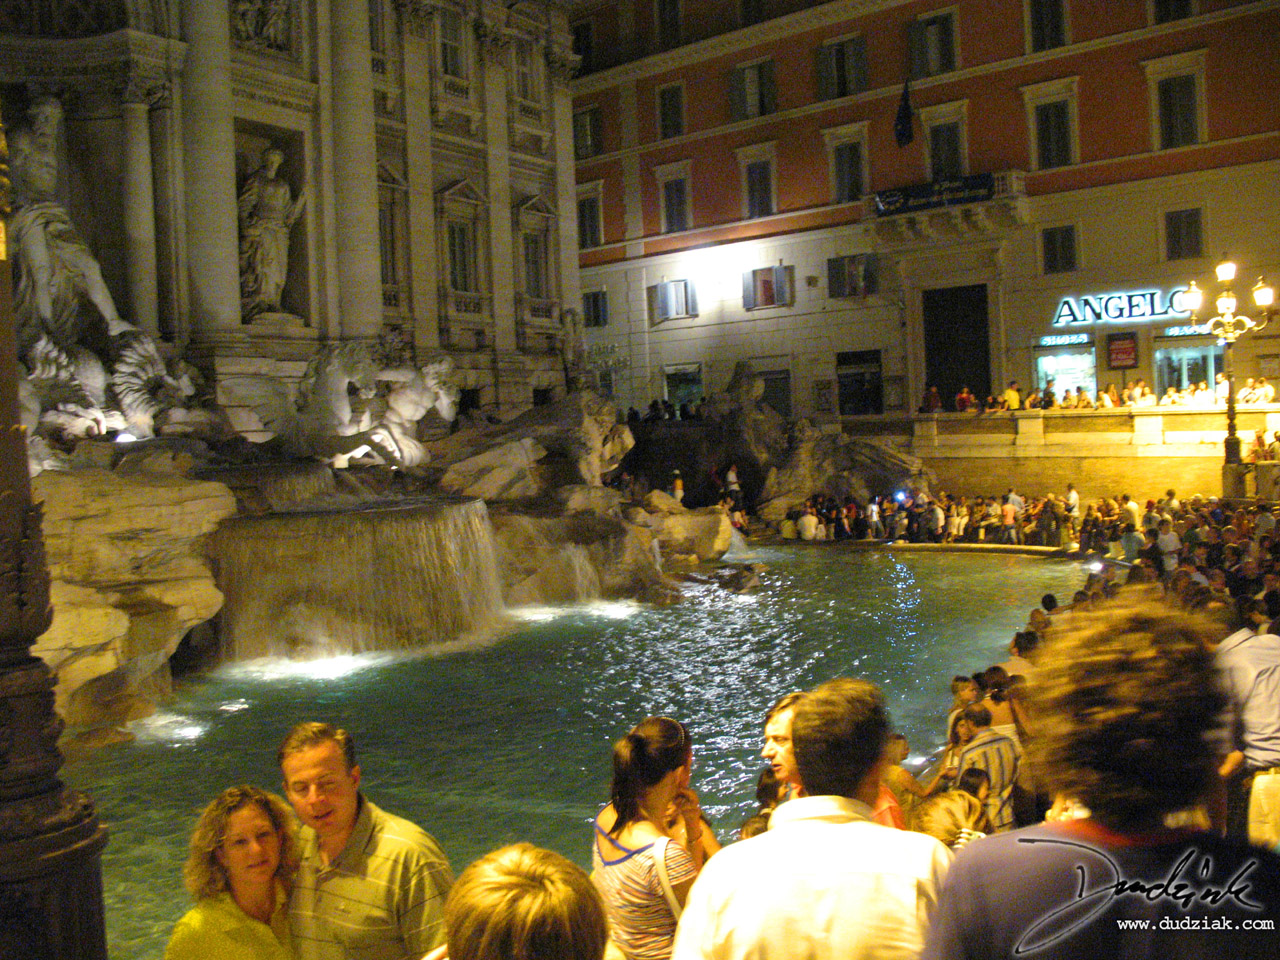 Picture of the Trevi Fountain (Fontana di Trevi) at nighttime in Rome, Italy.